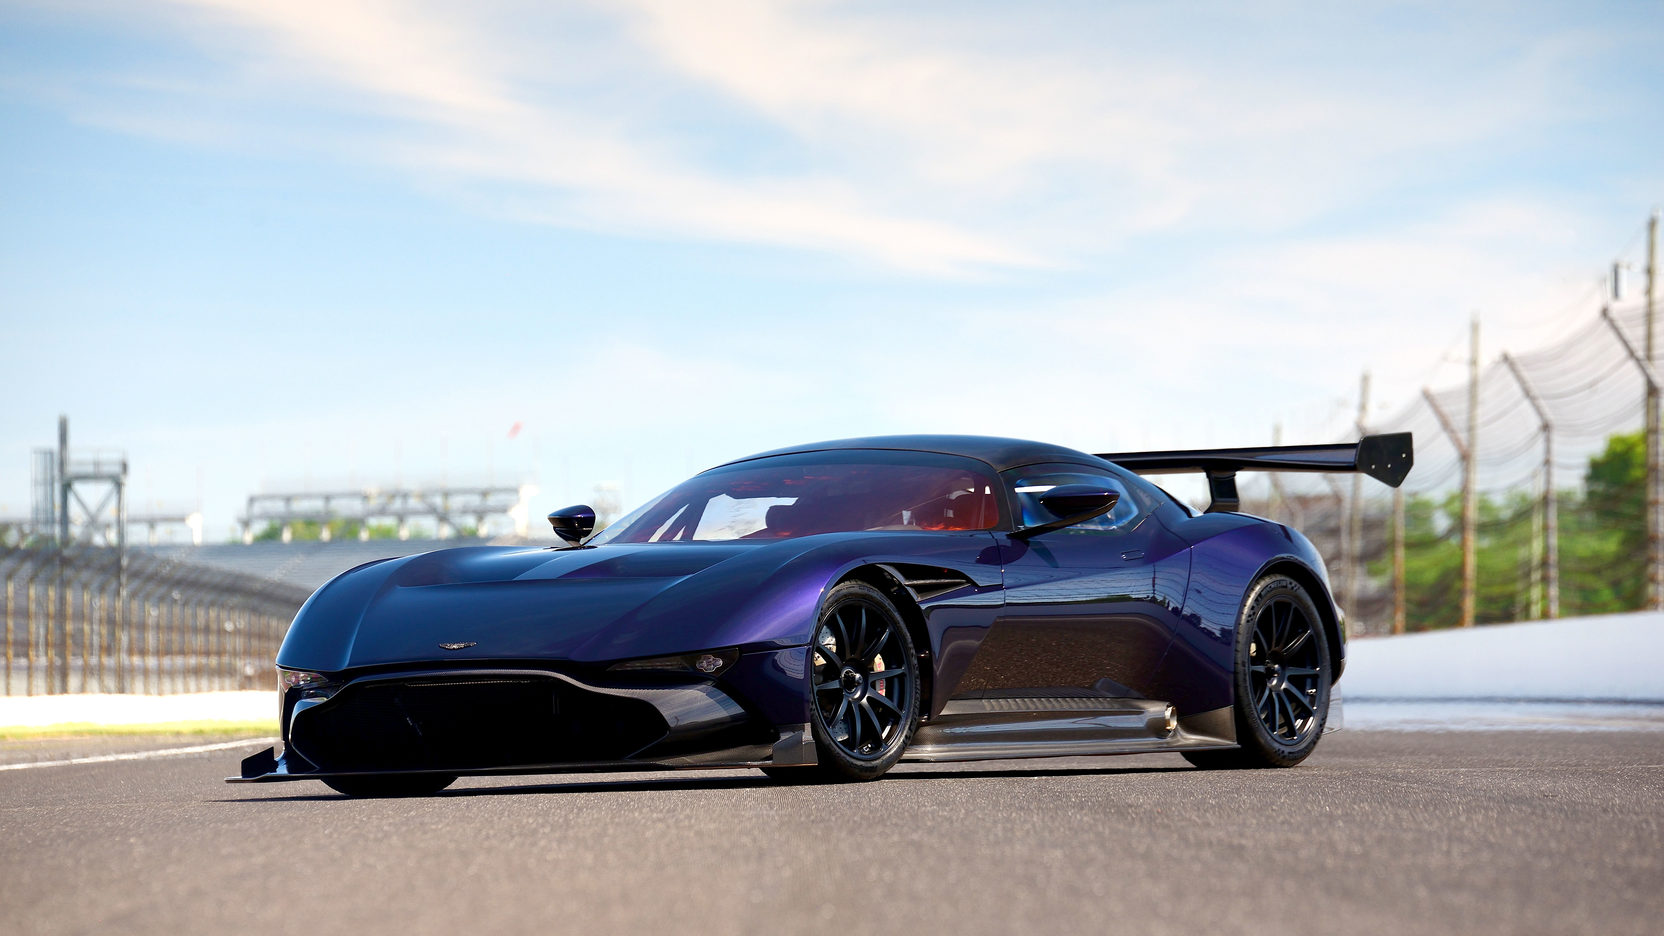 aston martin vulcan track-only supercar heading to auction